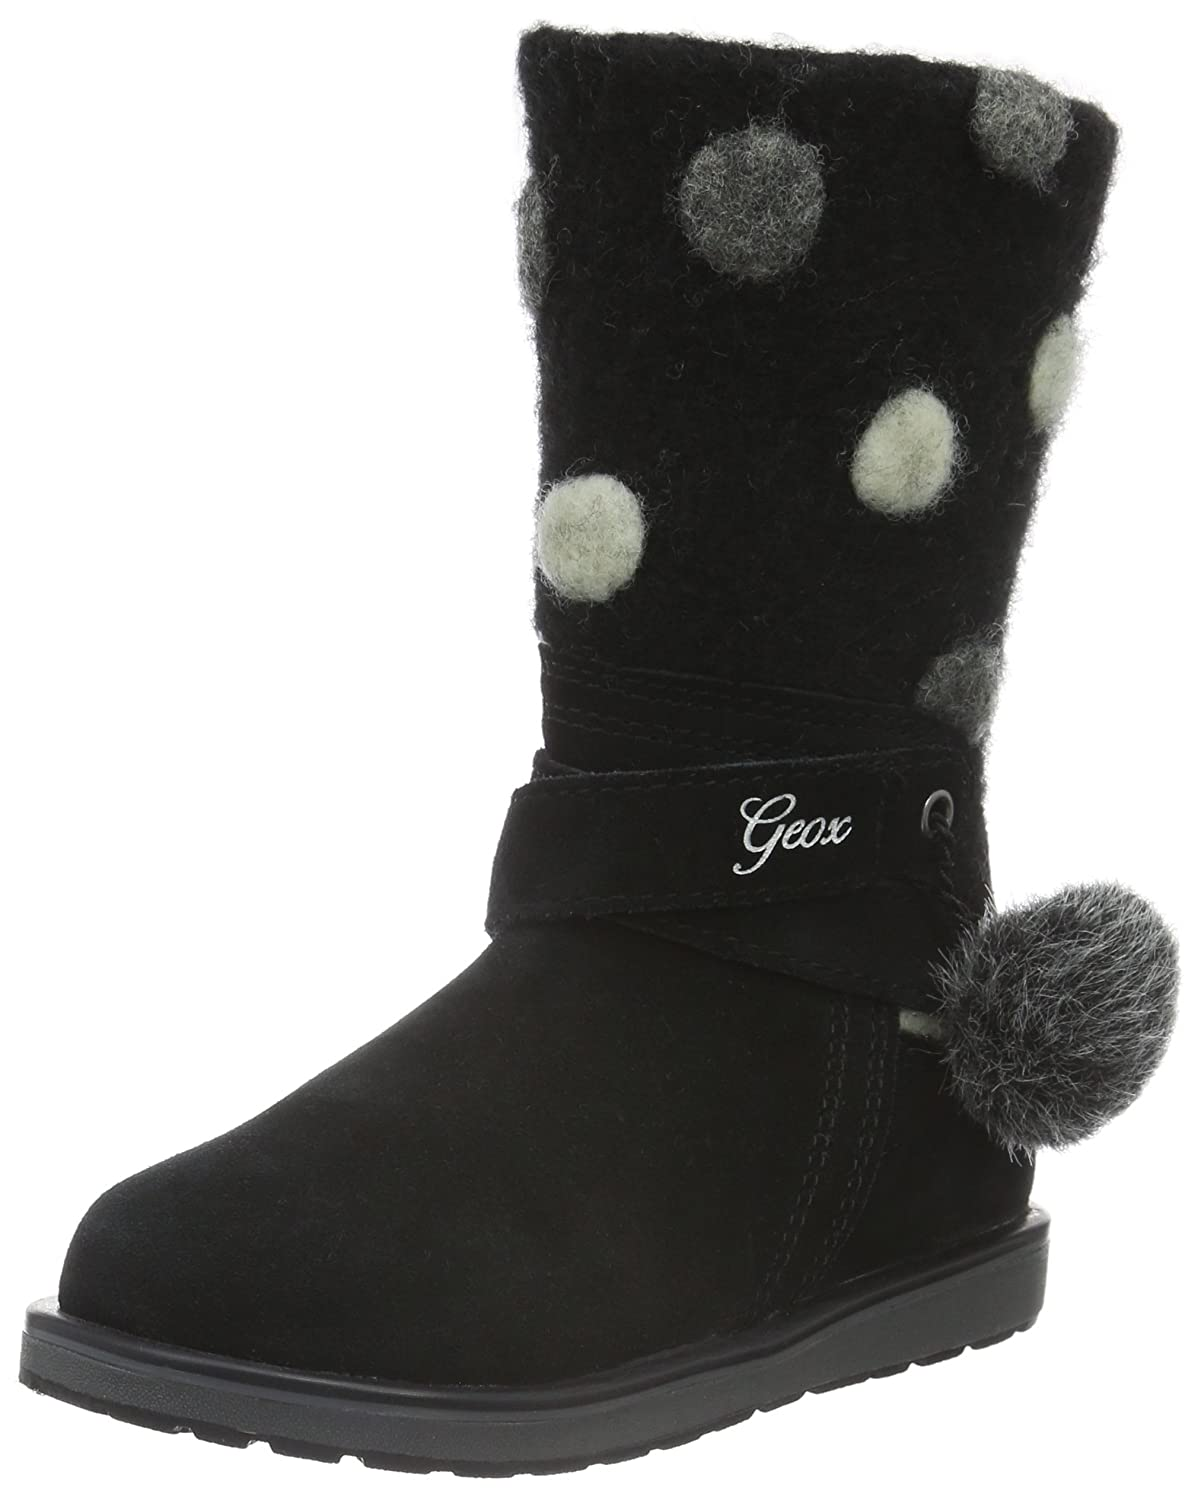 geox Girl Boots NOHA Black,geox shoes cheap,Official UK